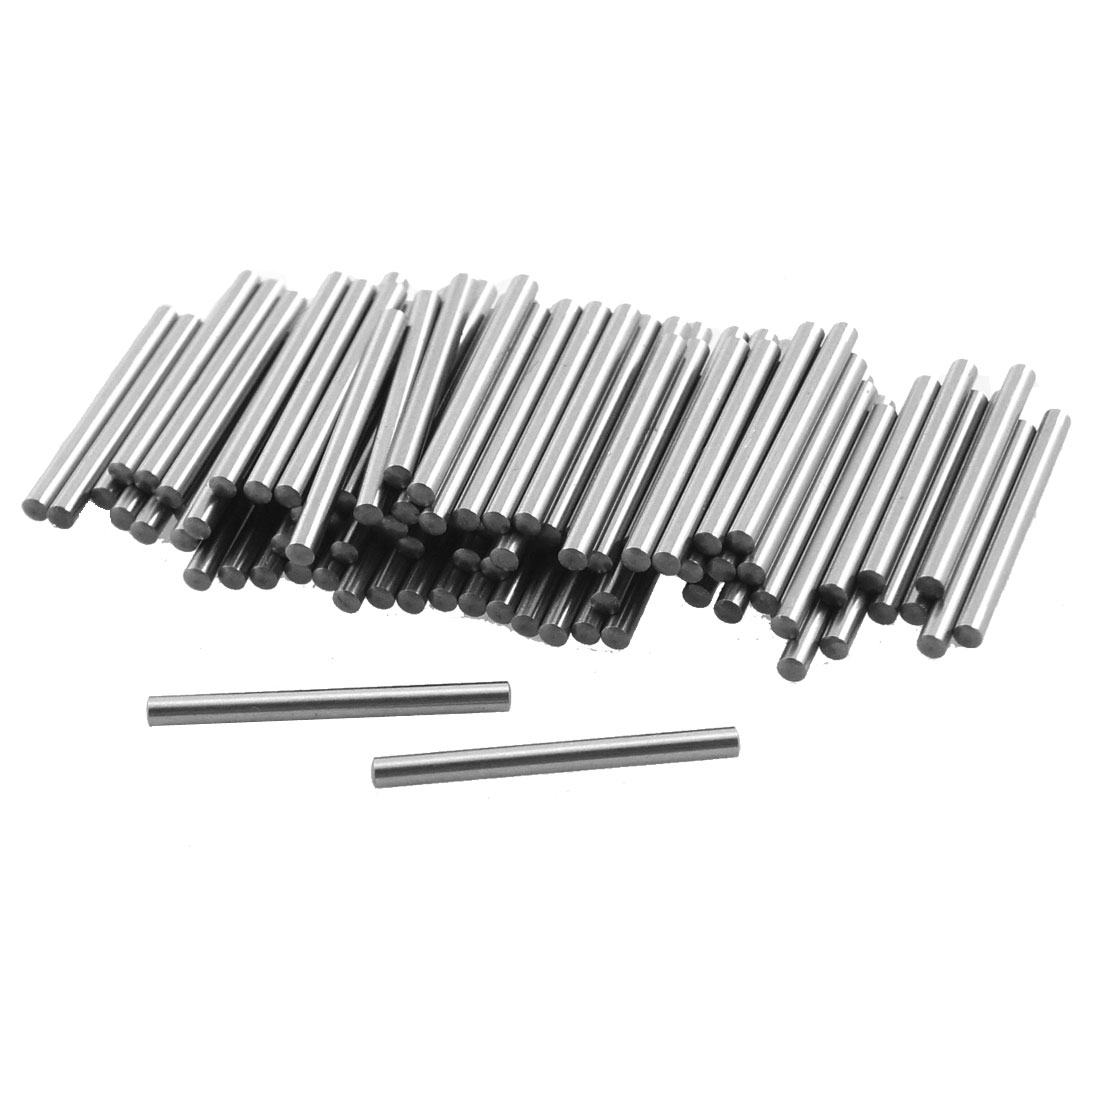 Unique Bargains 100 Pcs 1 35mm Diameter 15 8mm Length Cylinder Parallel Dowel Pins